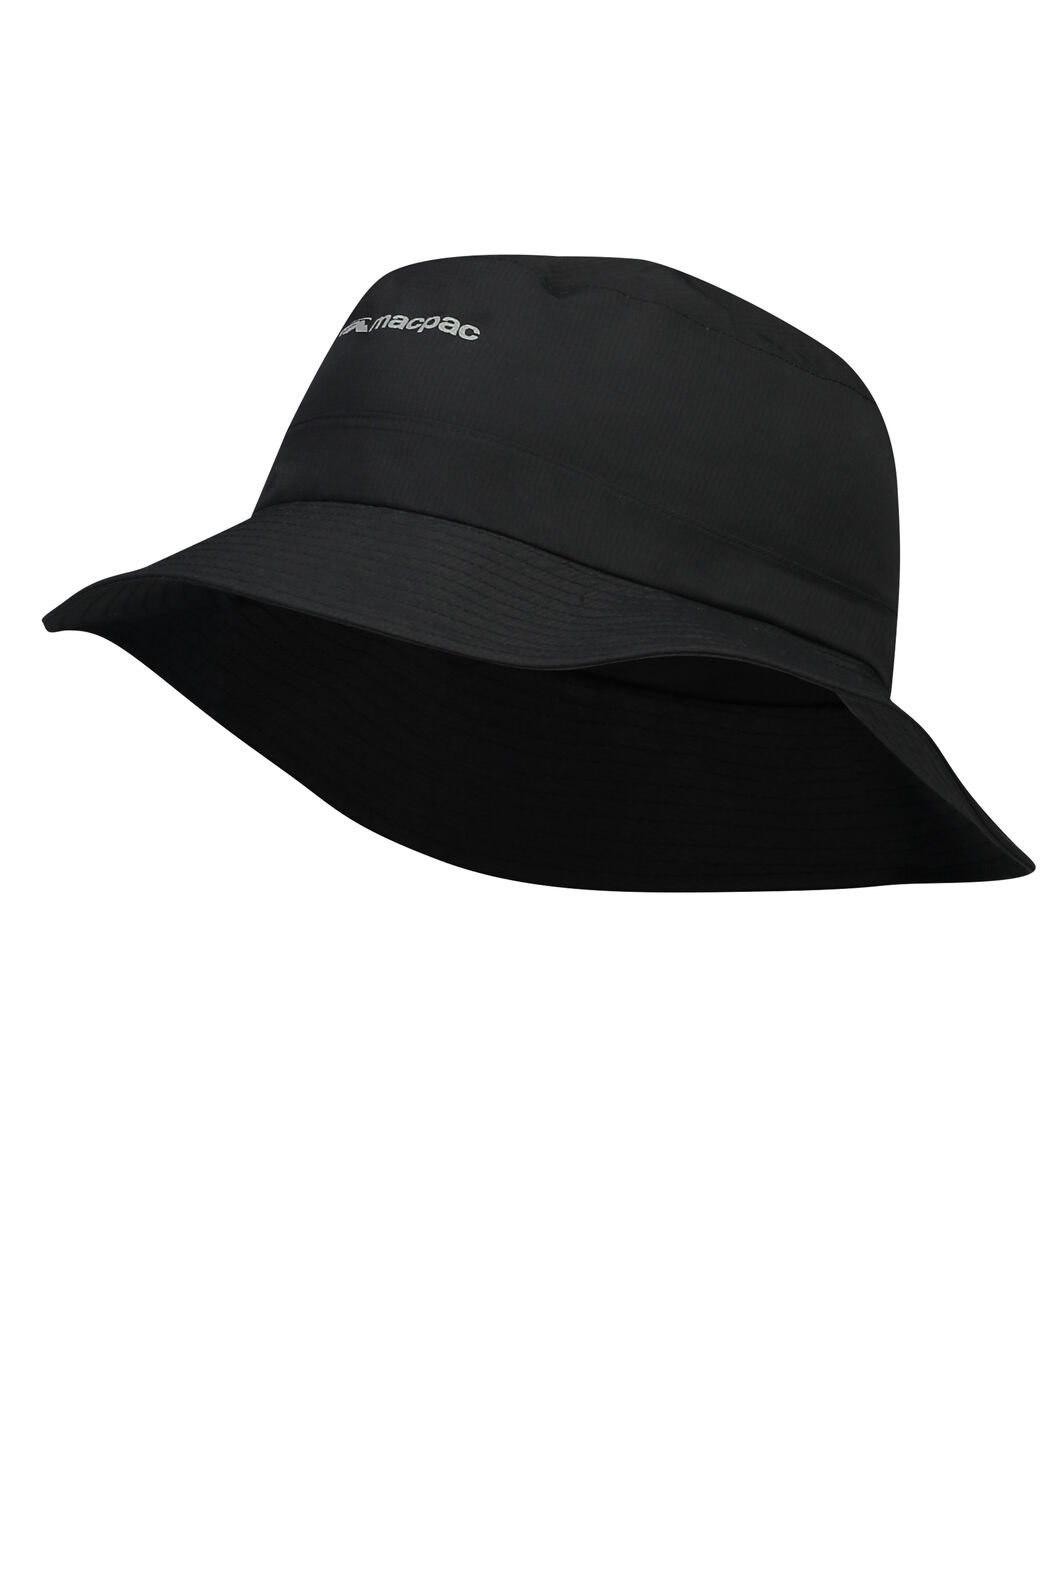 Macpac Waterproof Hat, Black, hi-res